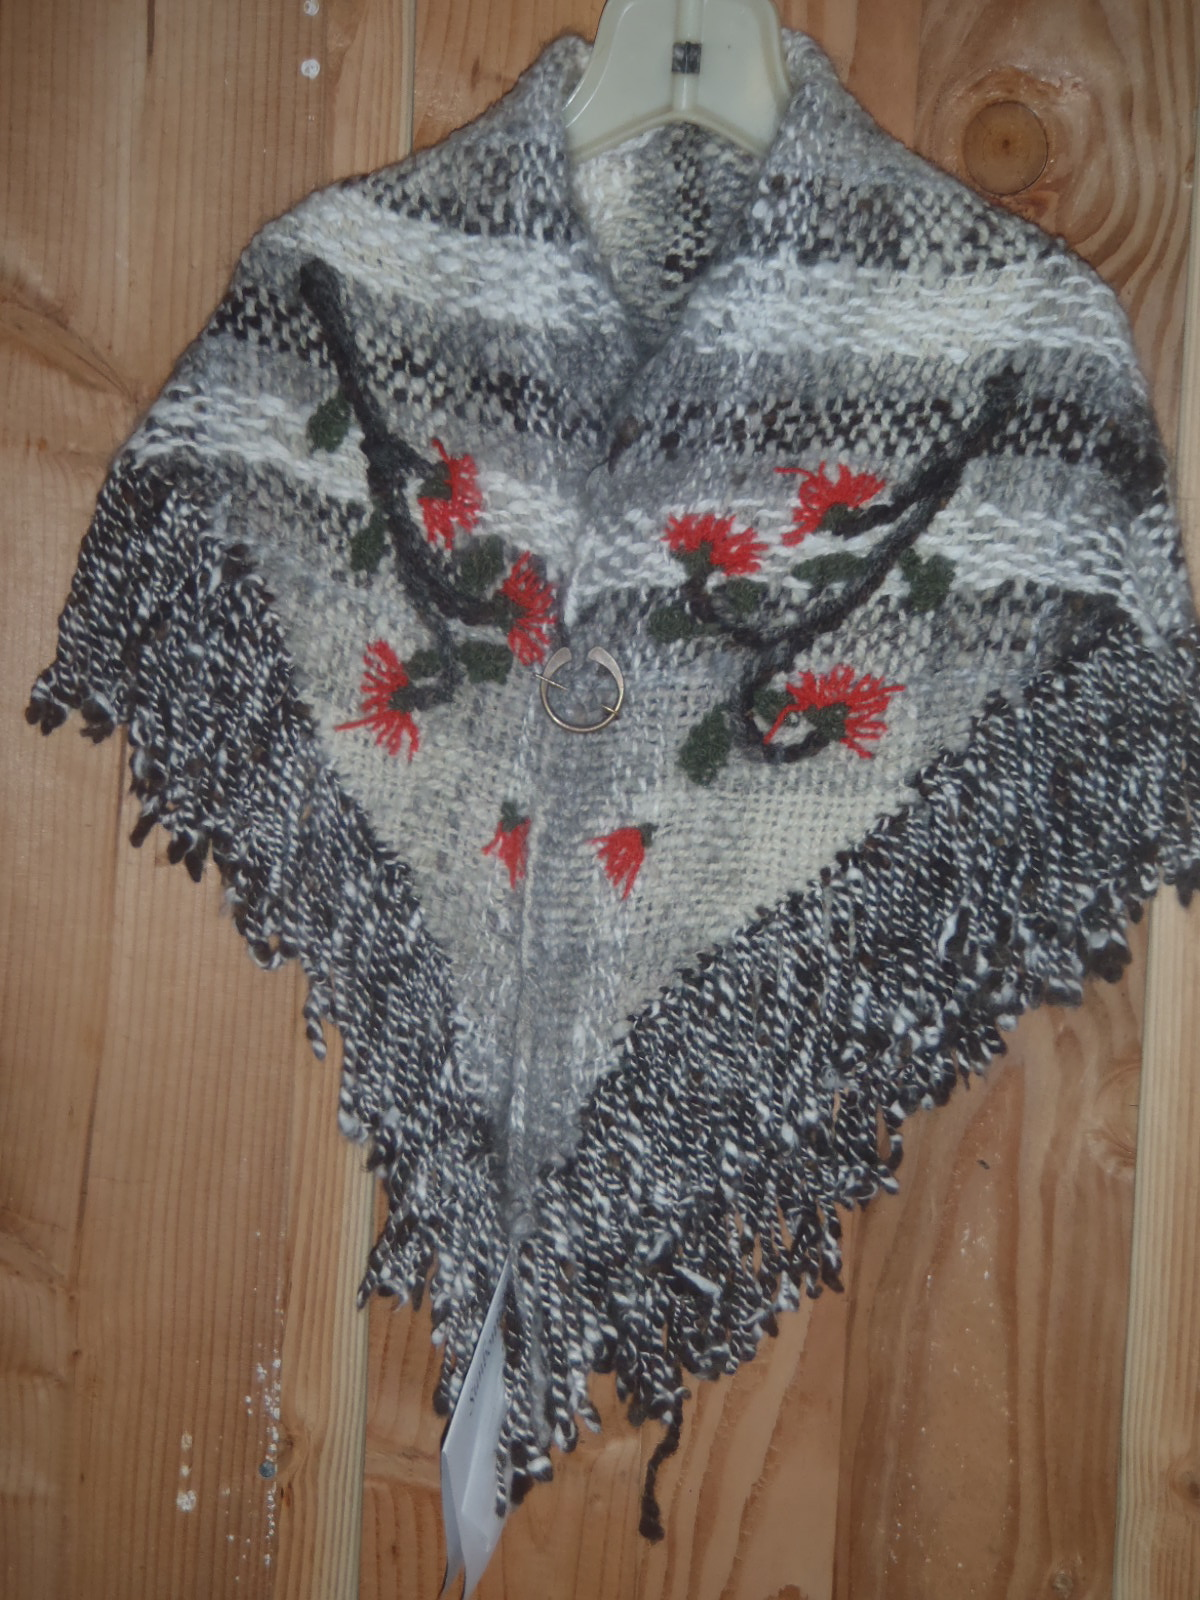 Shawl with embroider ohia blossoms.